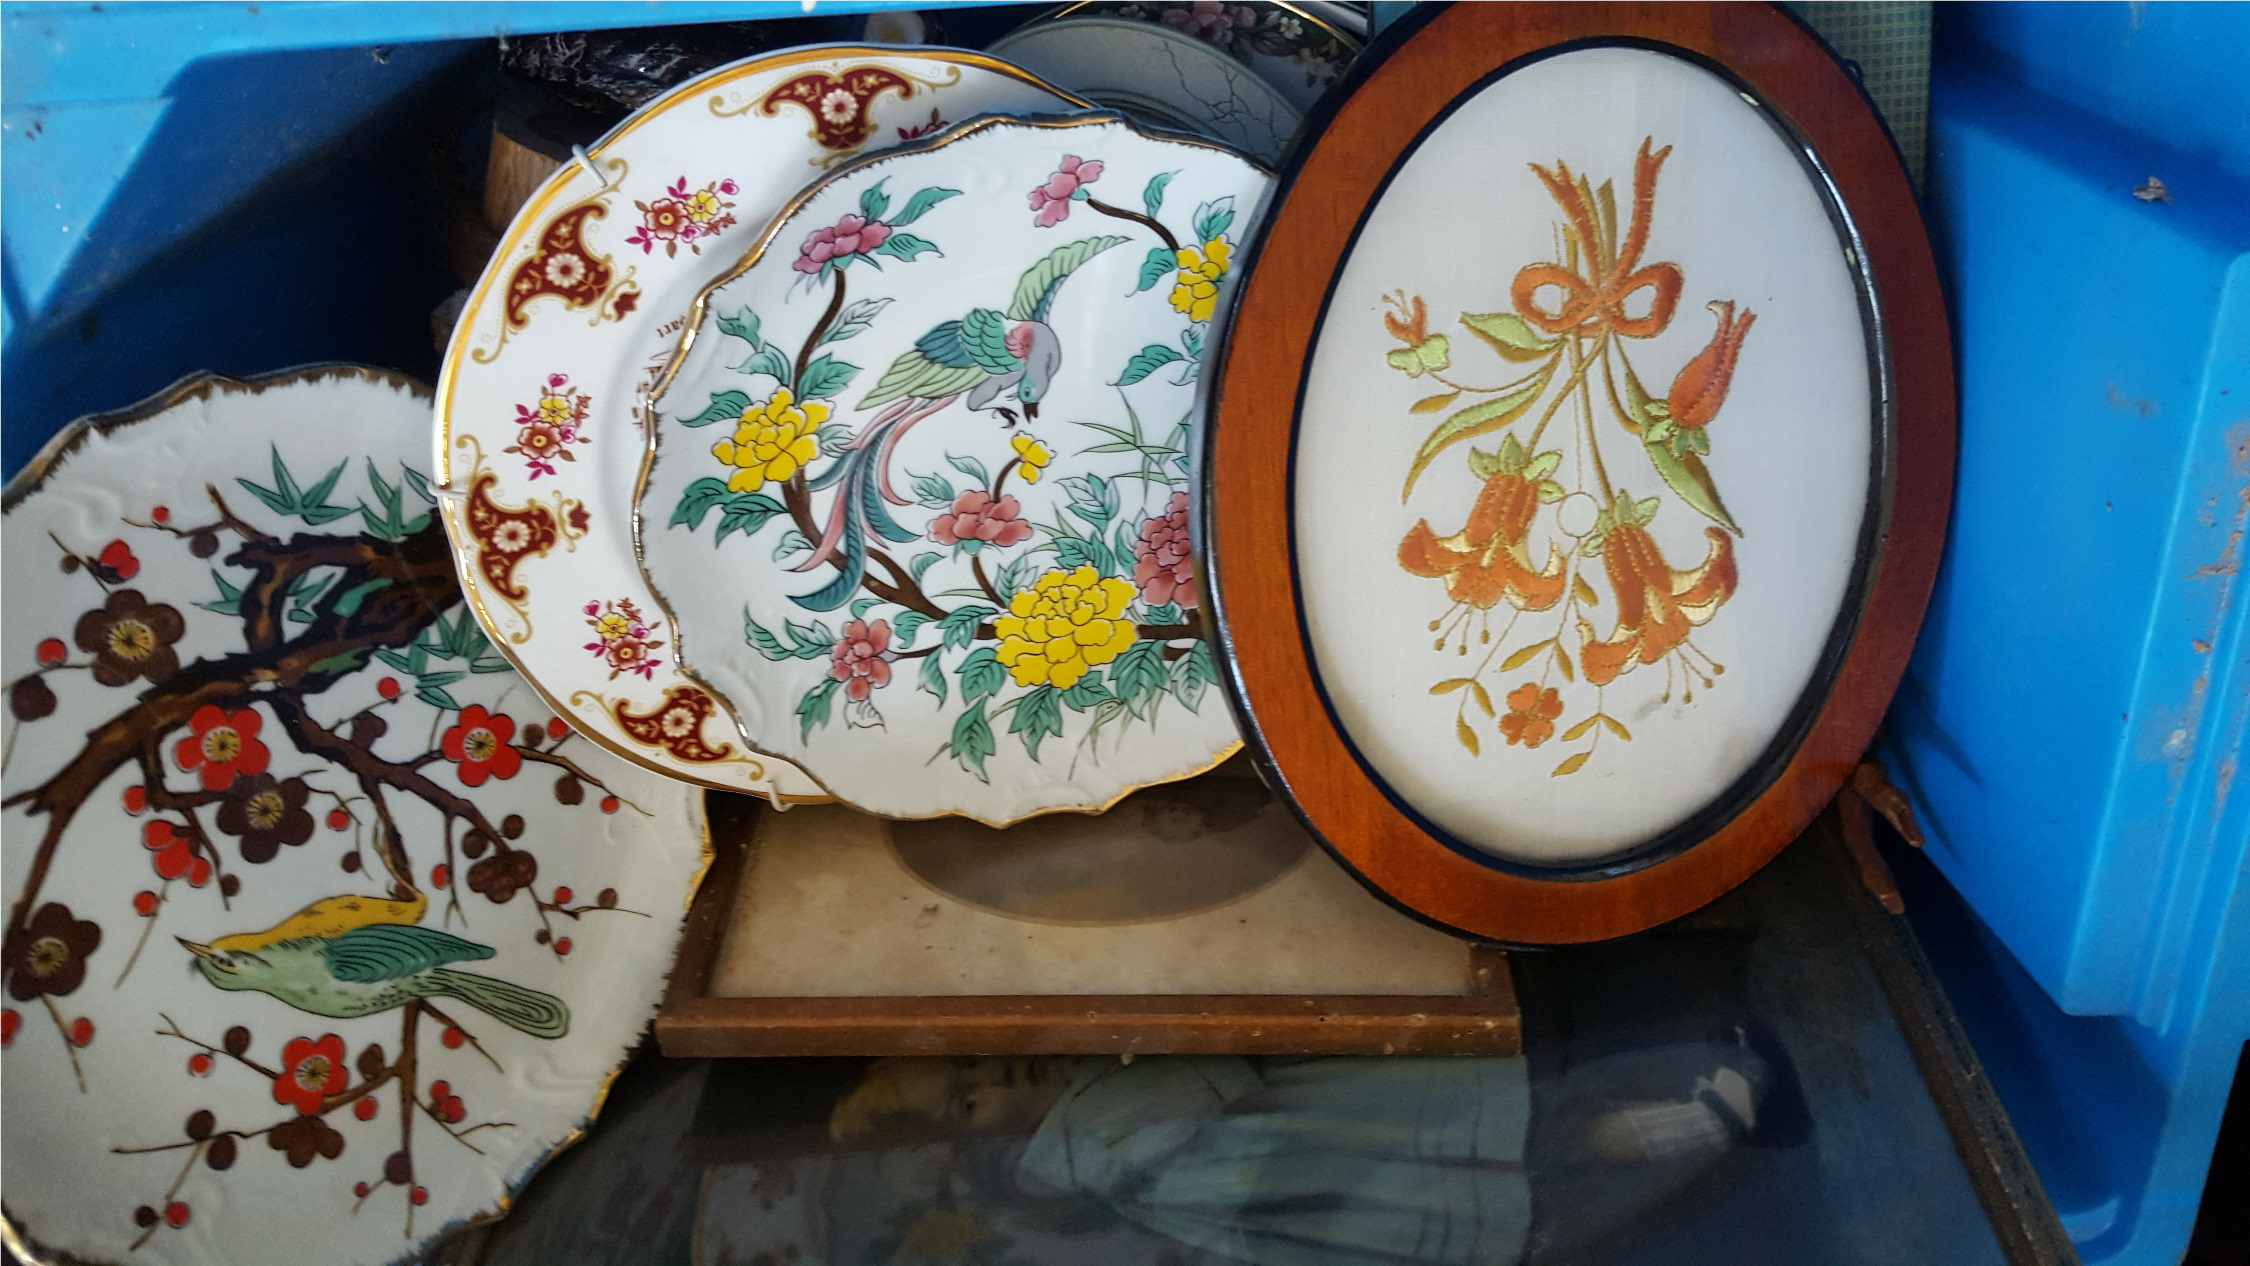 Lot 94 - Vintage Retro Box of Assorted Figures Plates Mirror & Pictures NO RESERVE